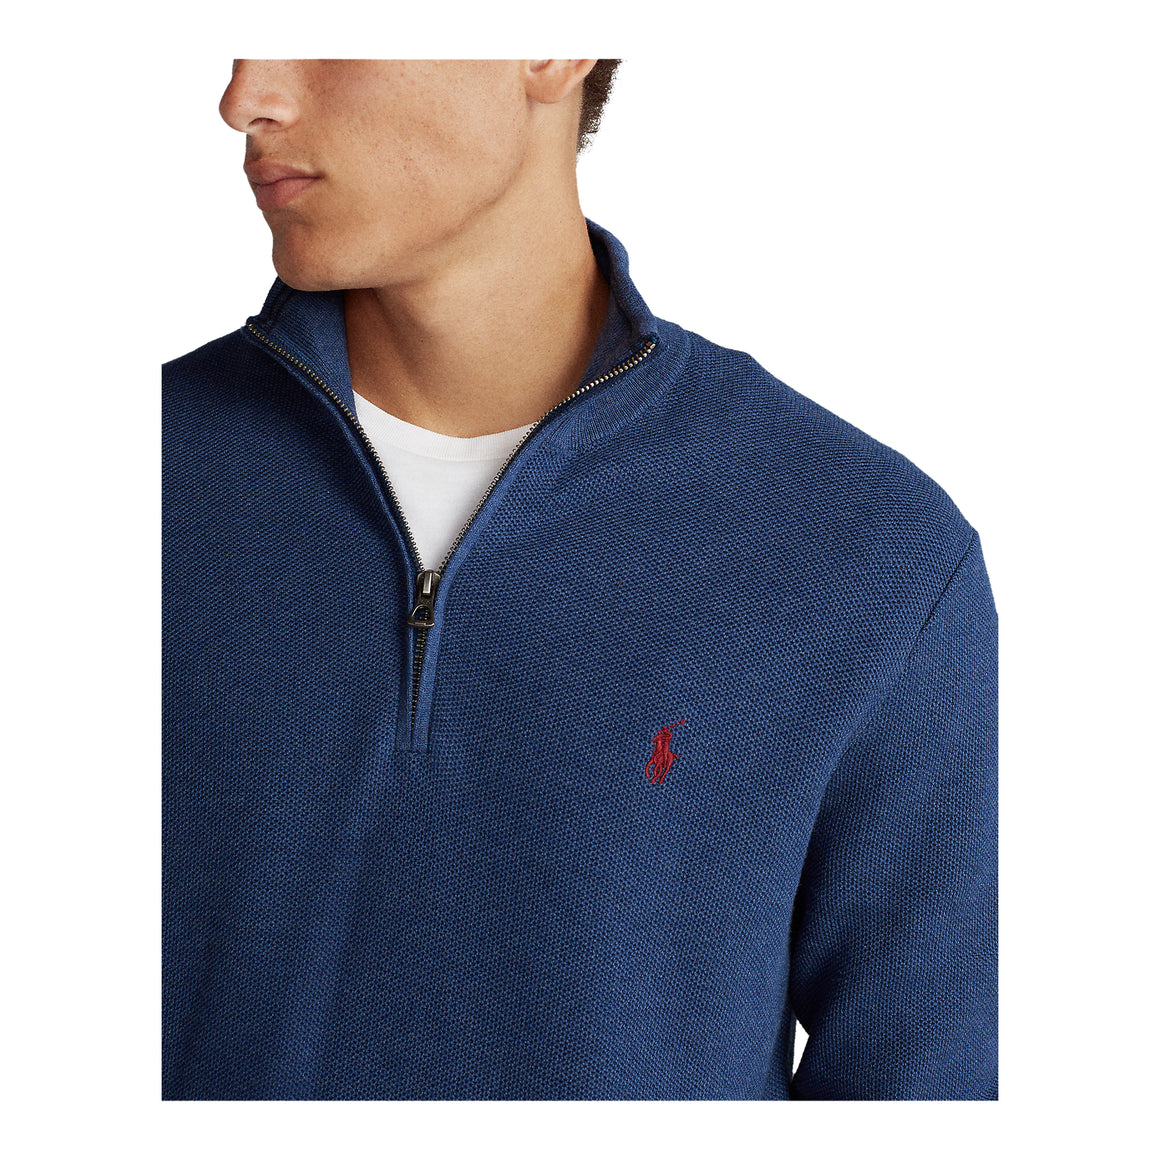 Pima 1/2 Zip Knit for Men in Navy